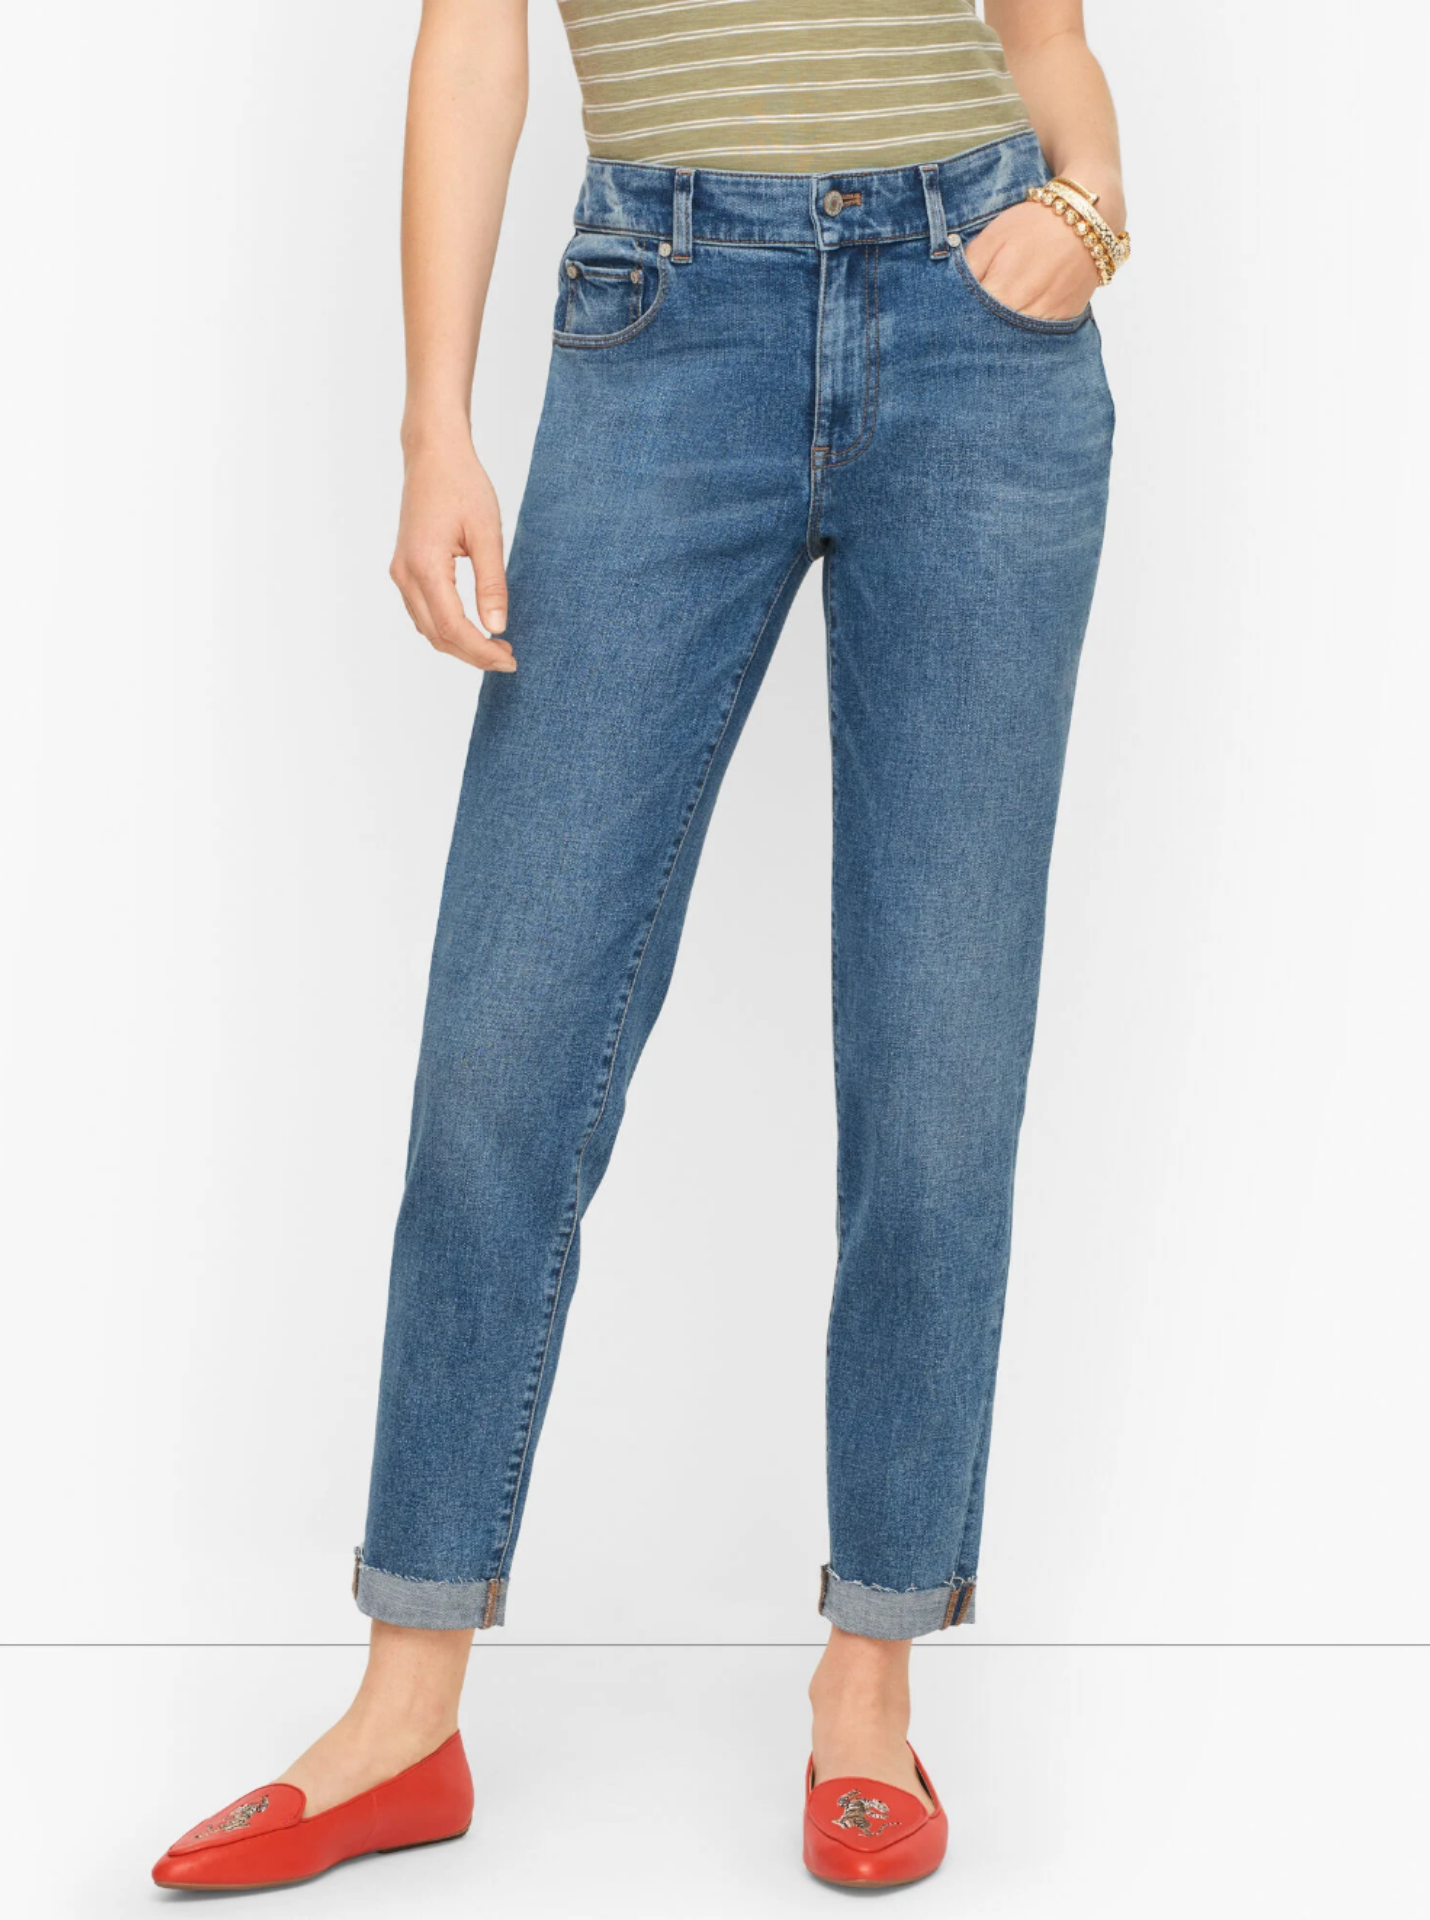 Talbots Relaxed Everyday Jeans August 2021 Favorites